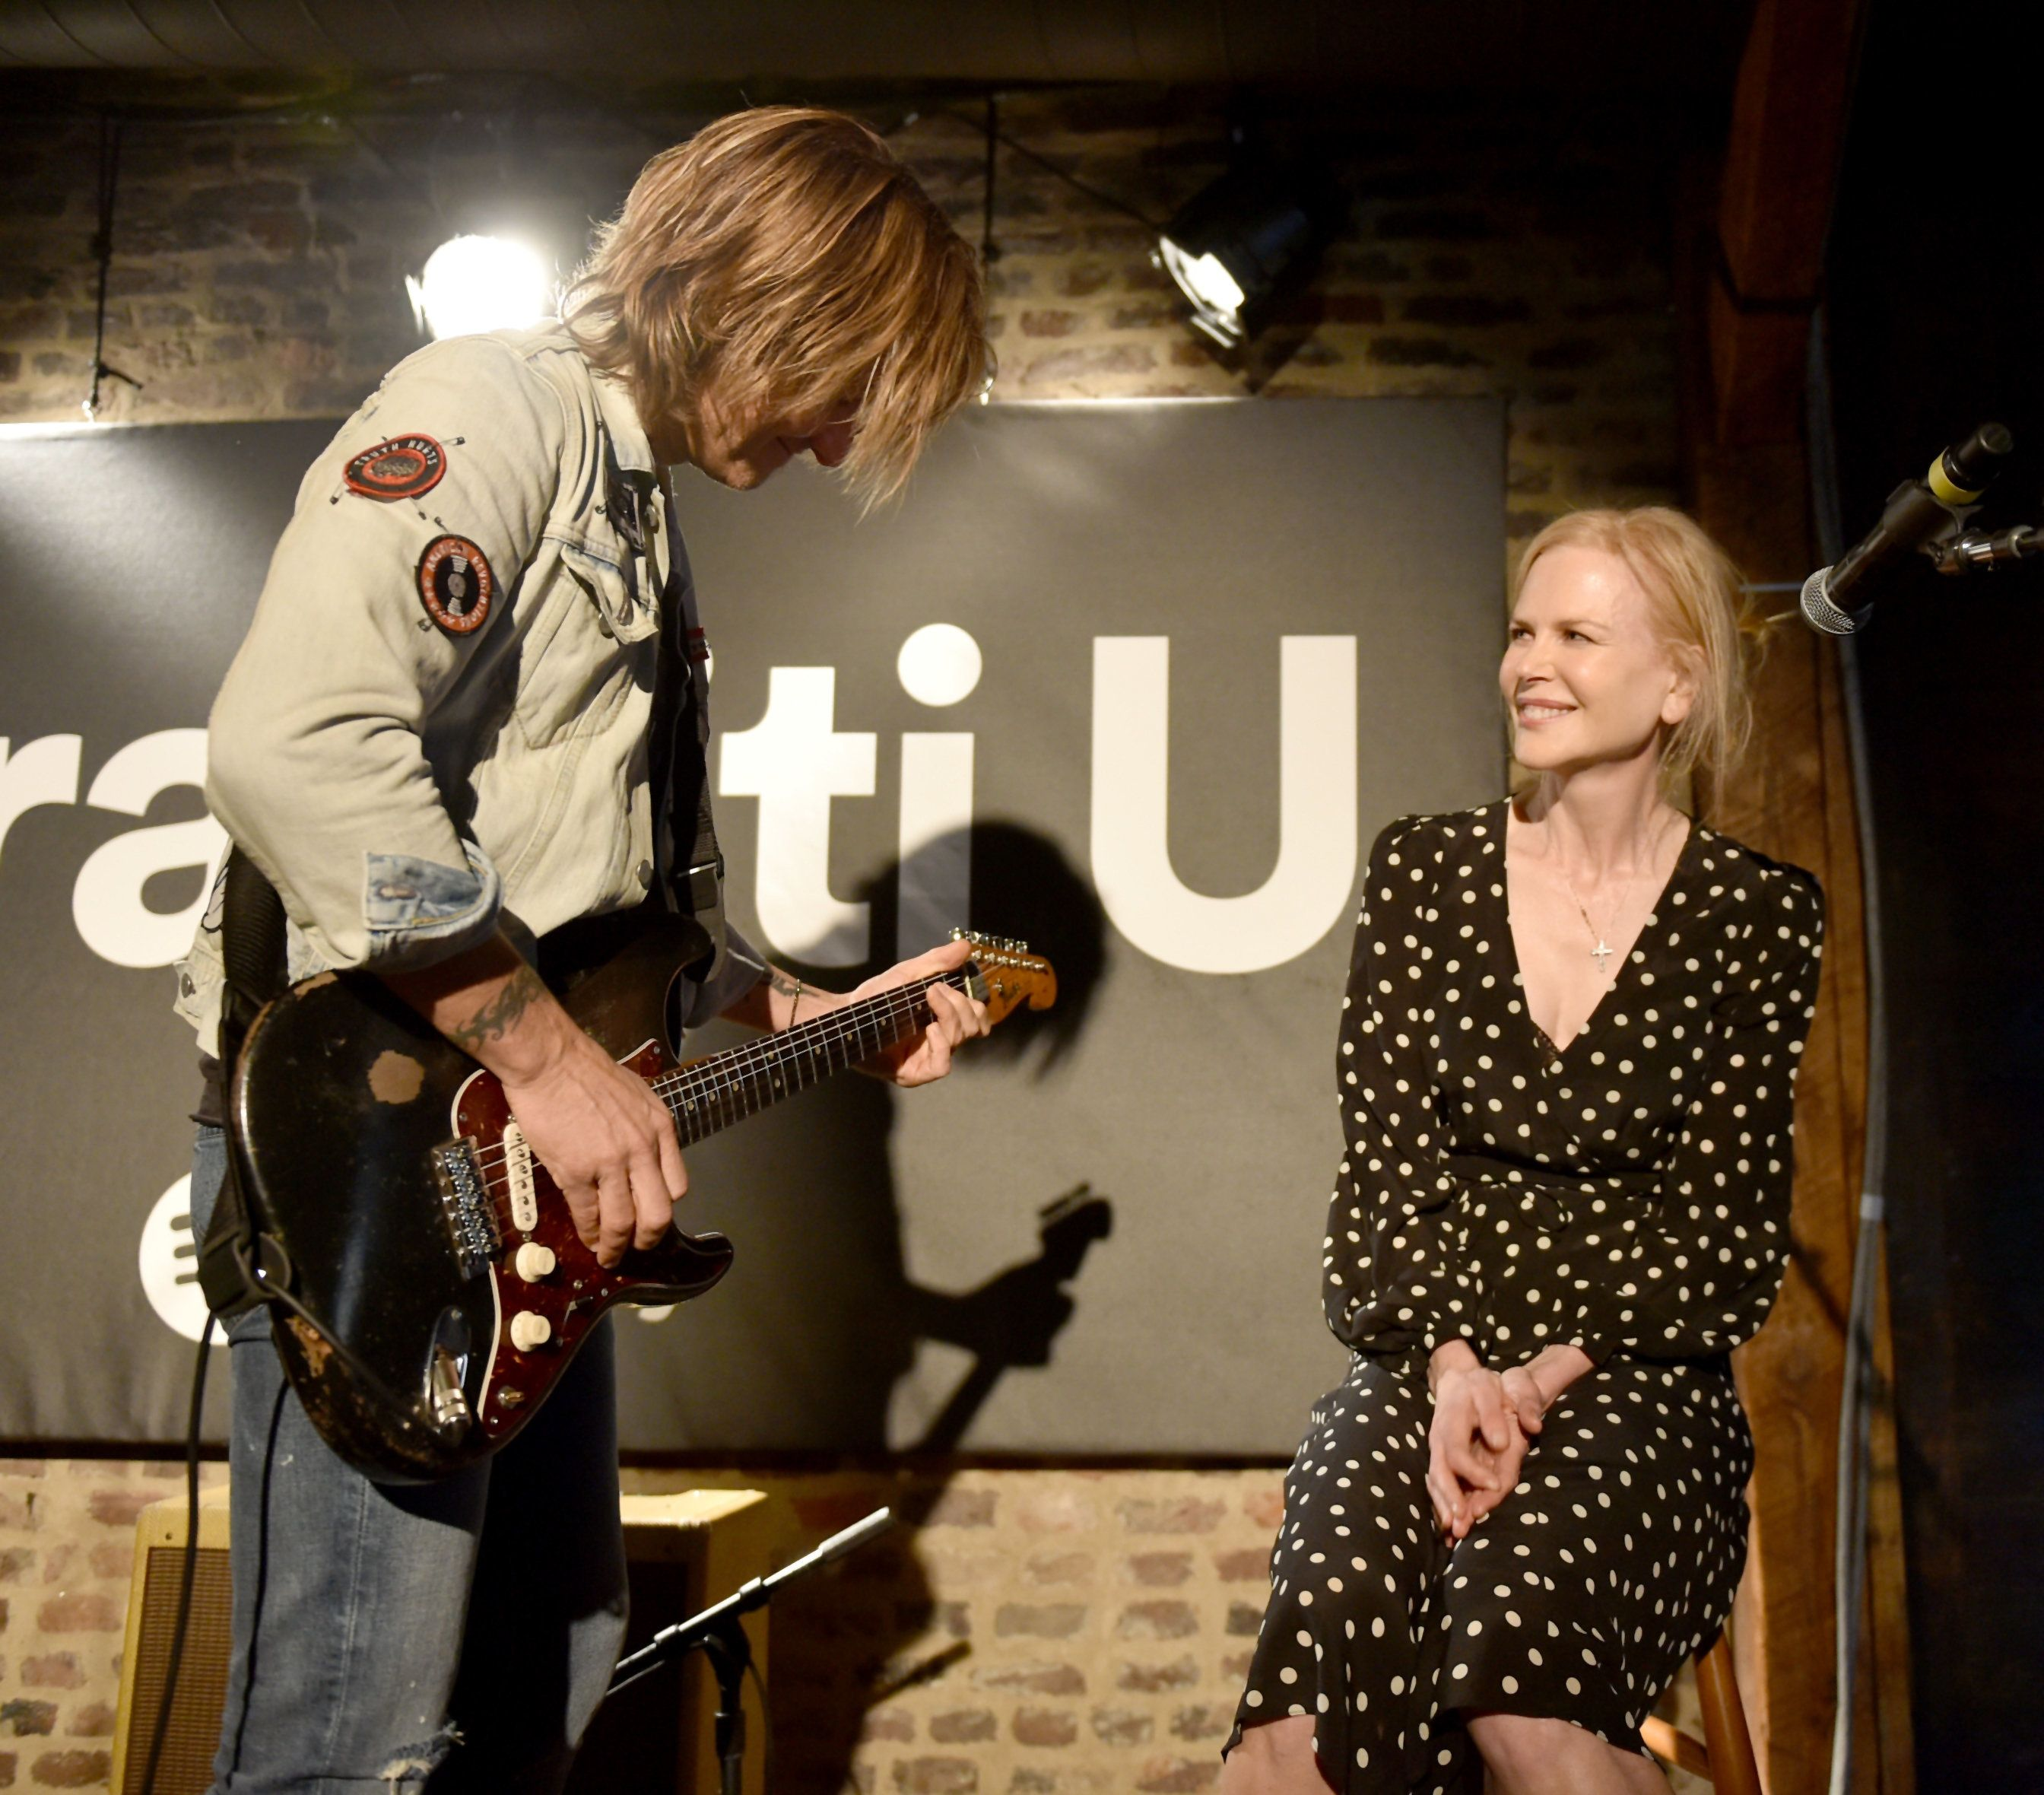 NASHVILLE, TN - APRIL 23:  Keith Urban (L) and wife Nicole Kidman (R) perform onstage for a spotify fans first event at Houston Station on April 23, 2018 in Nashville, Tennessee.  (Photo by John Shearer/Getty Images for Spotify)